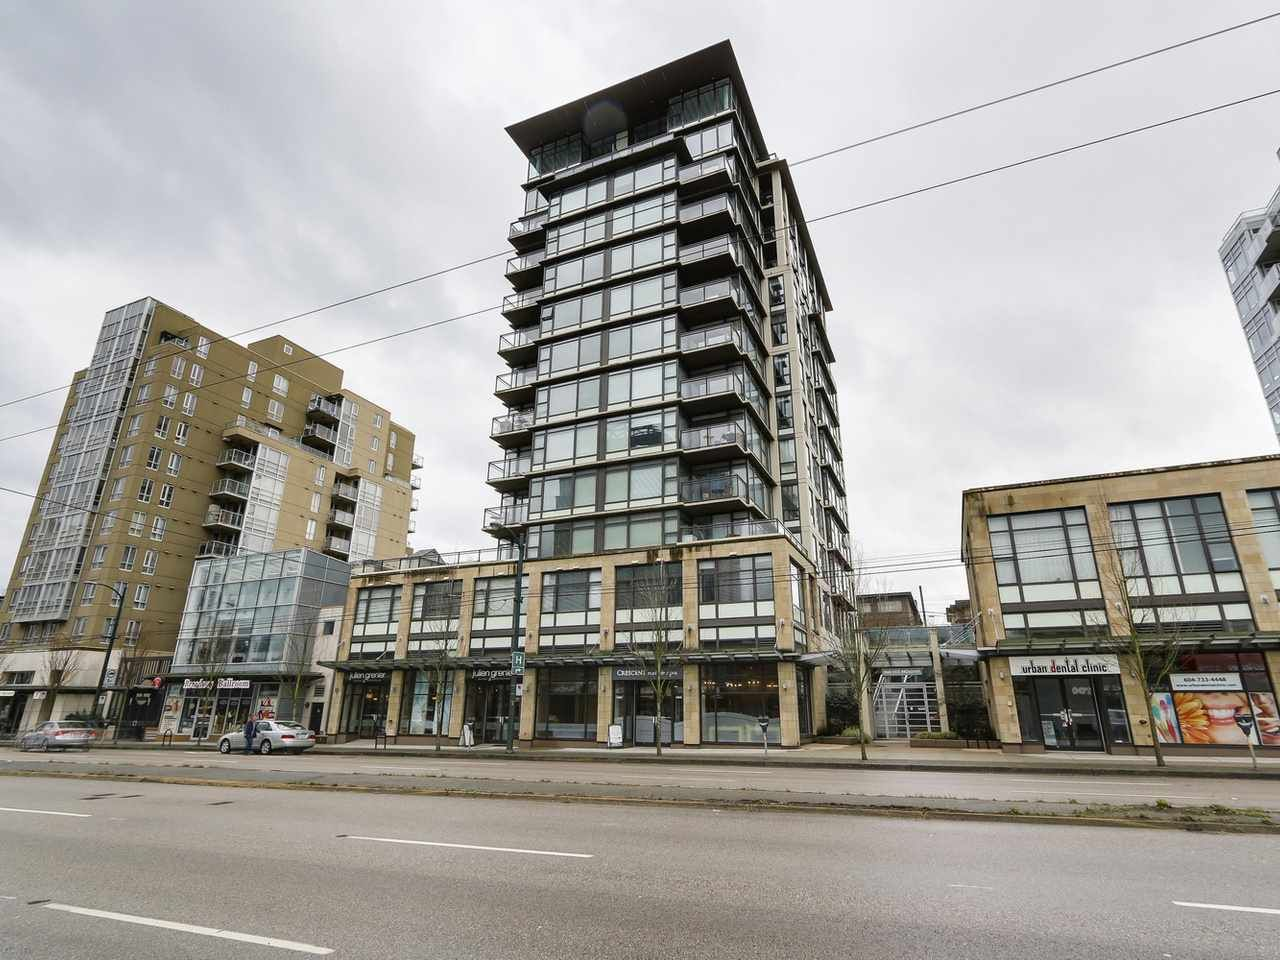 """Main Photo: 1001 1068 W BROADWAY in Vancouver: Fairview VW Condo for sale in """"The Zone"""" (Vancouver West)  : MLS®# R2148292"""